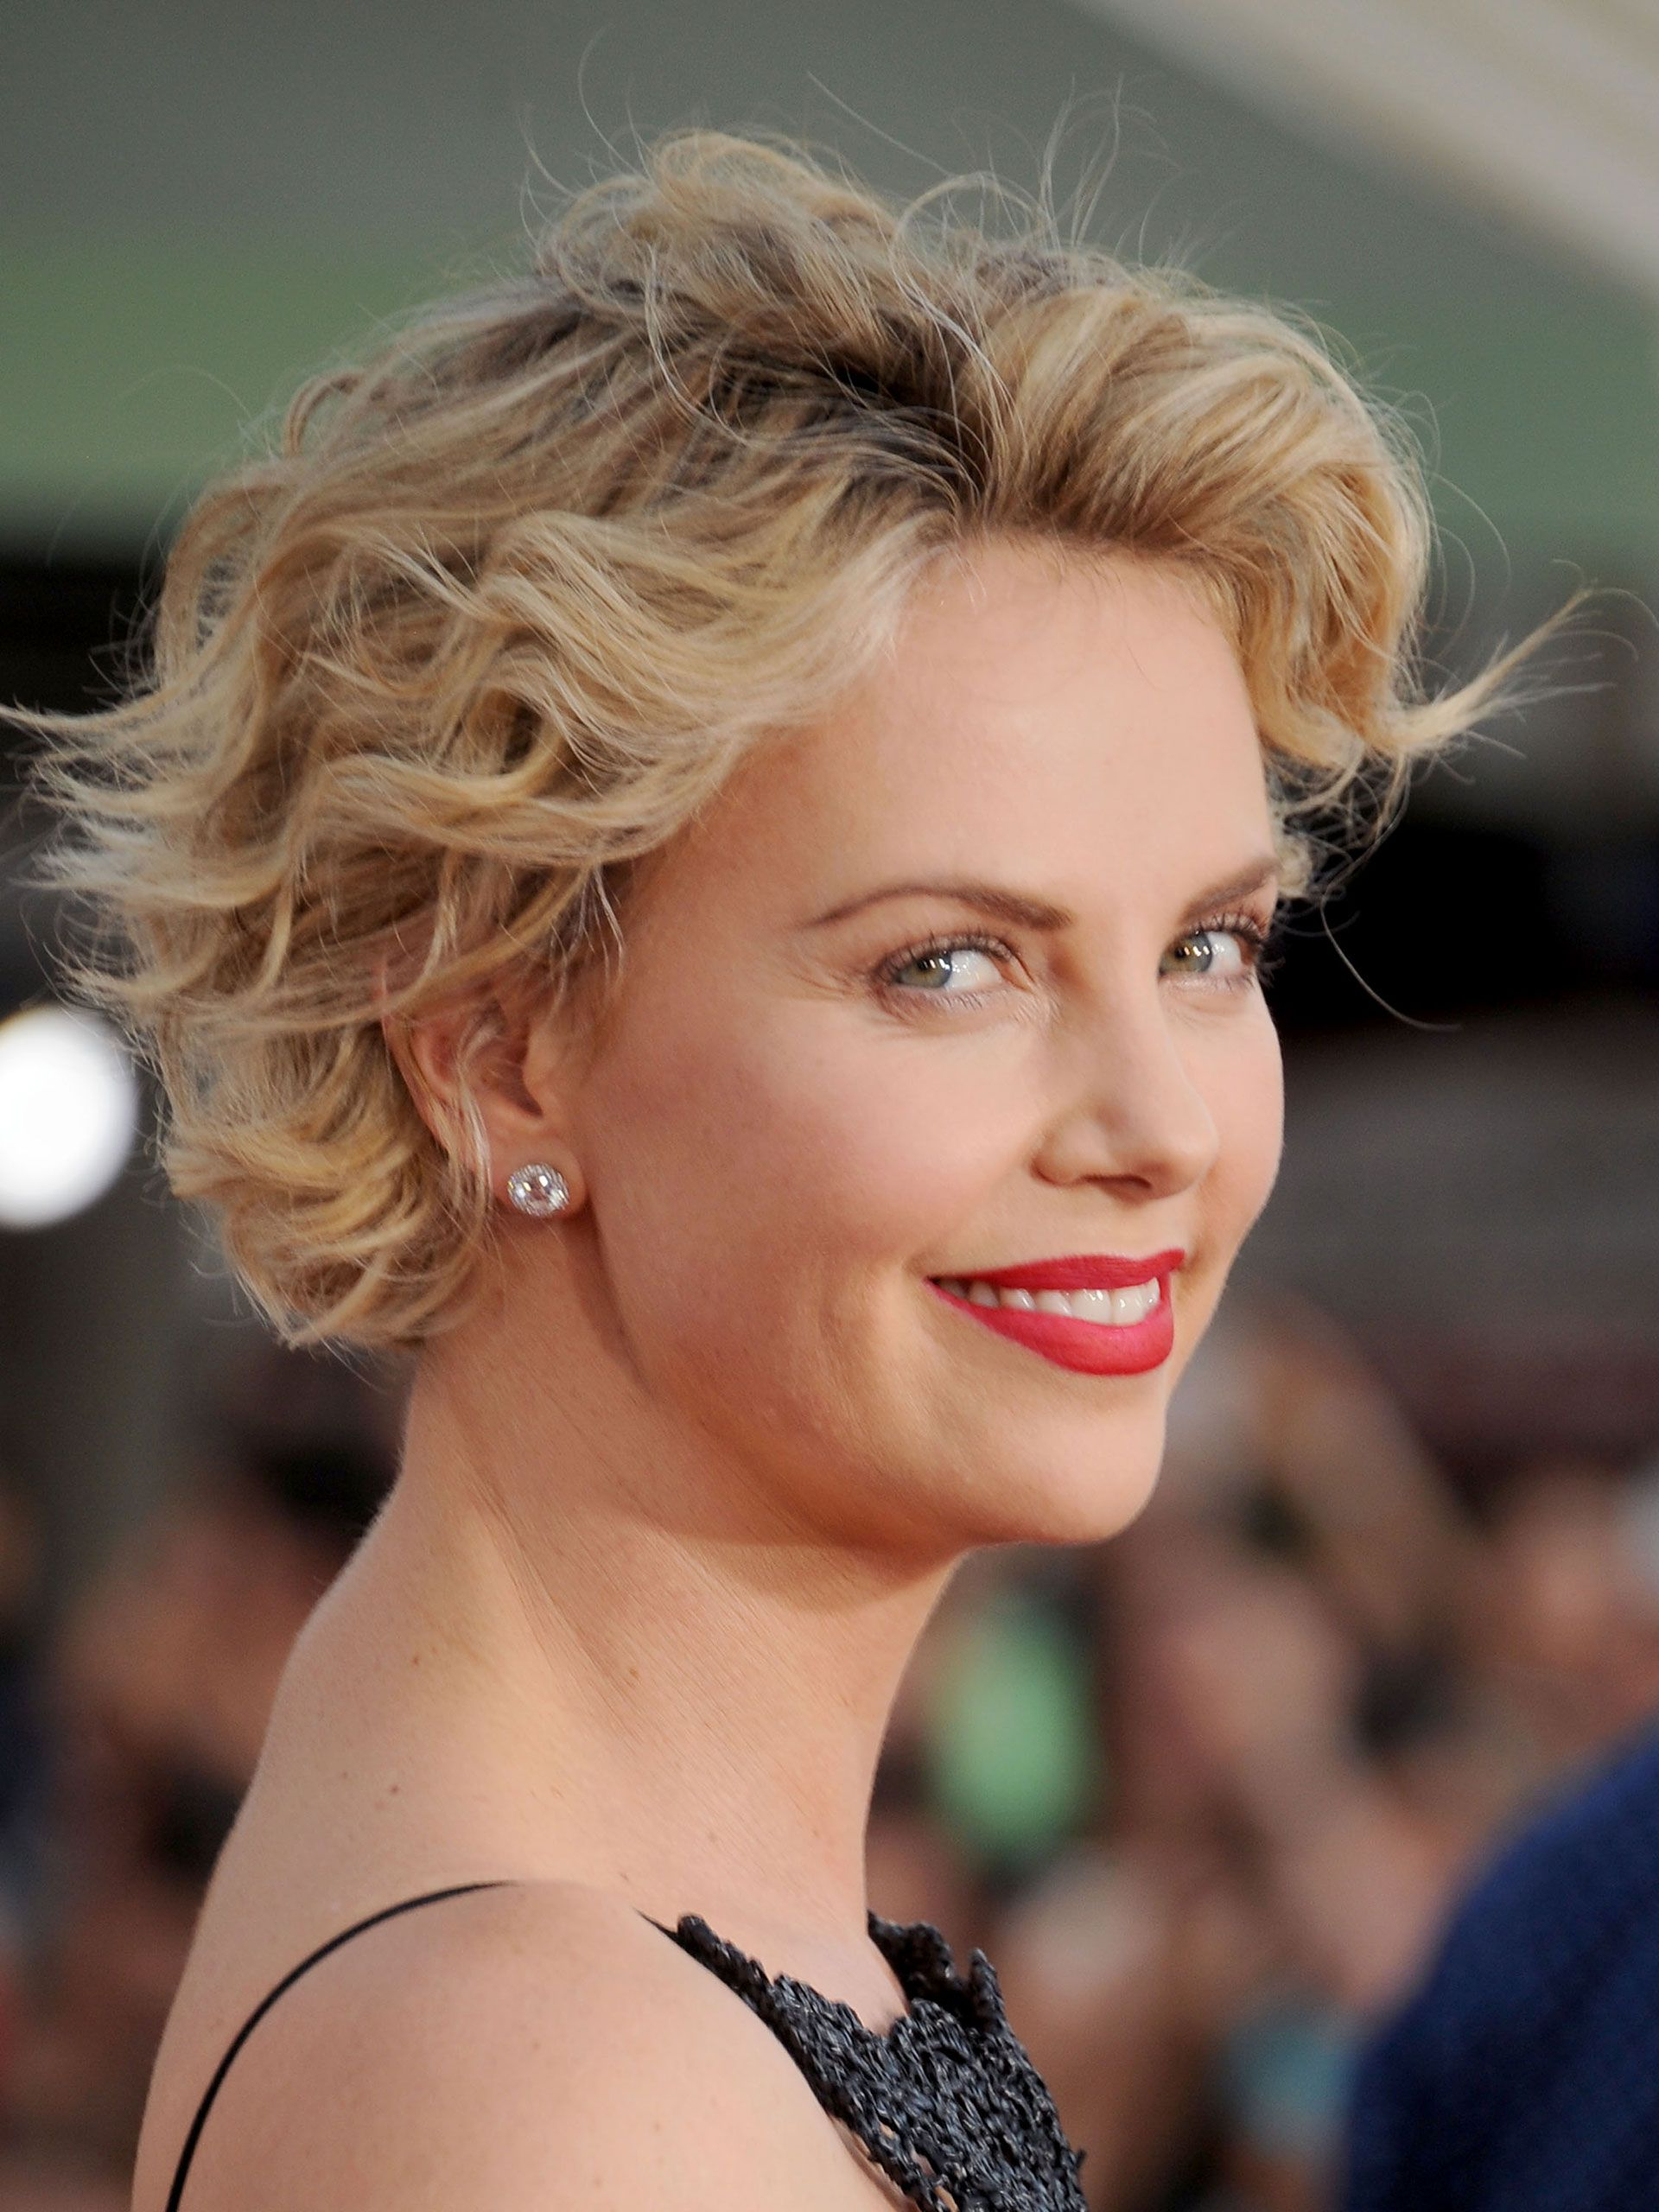 How To Cut Curly Hair Short